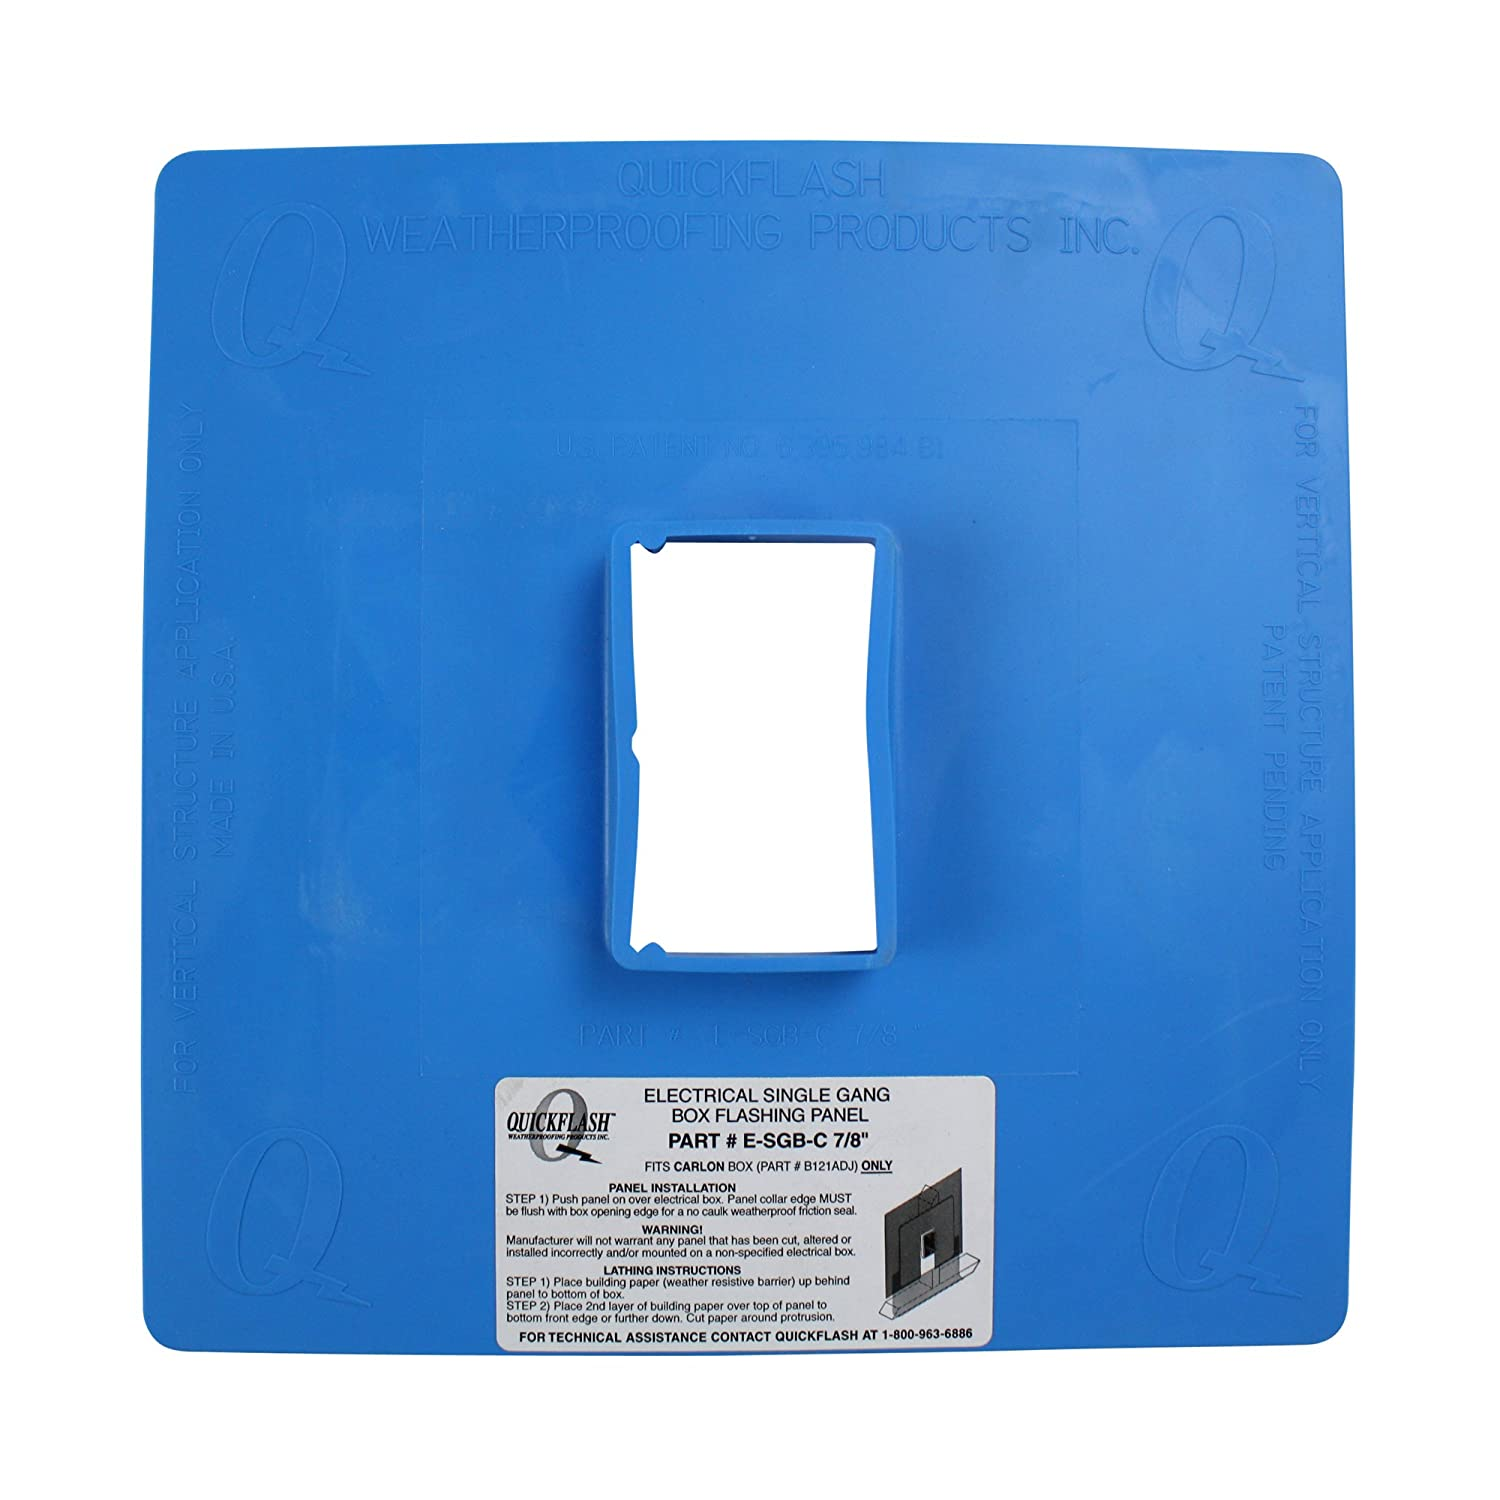 Sgb-A 7//8 QuickFlash Weatherproofing Products Inc. Quickflash Electrical Single Gang Box Flashing Panel E